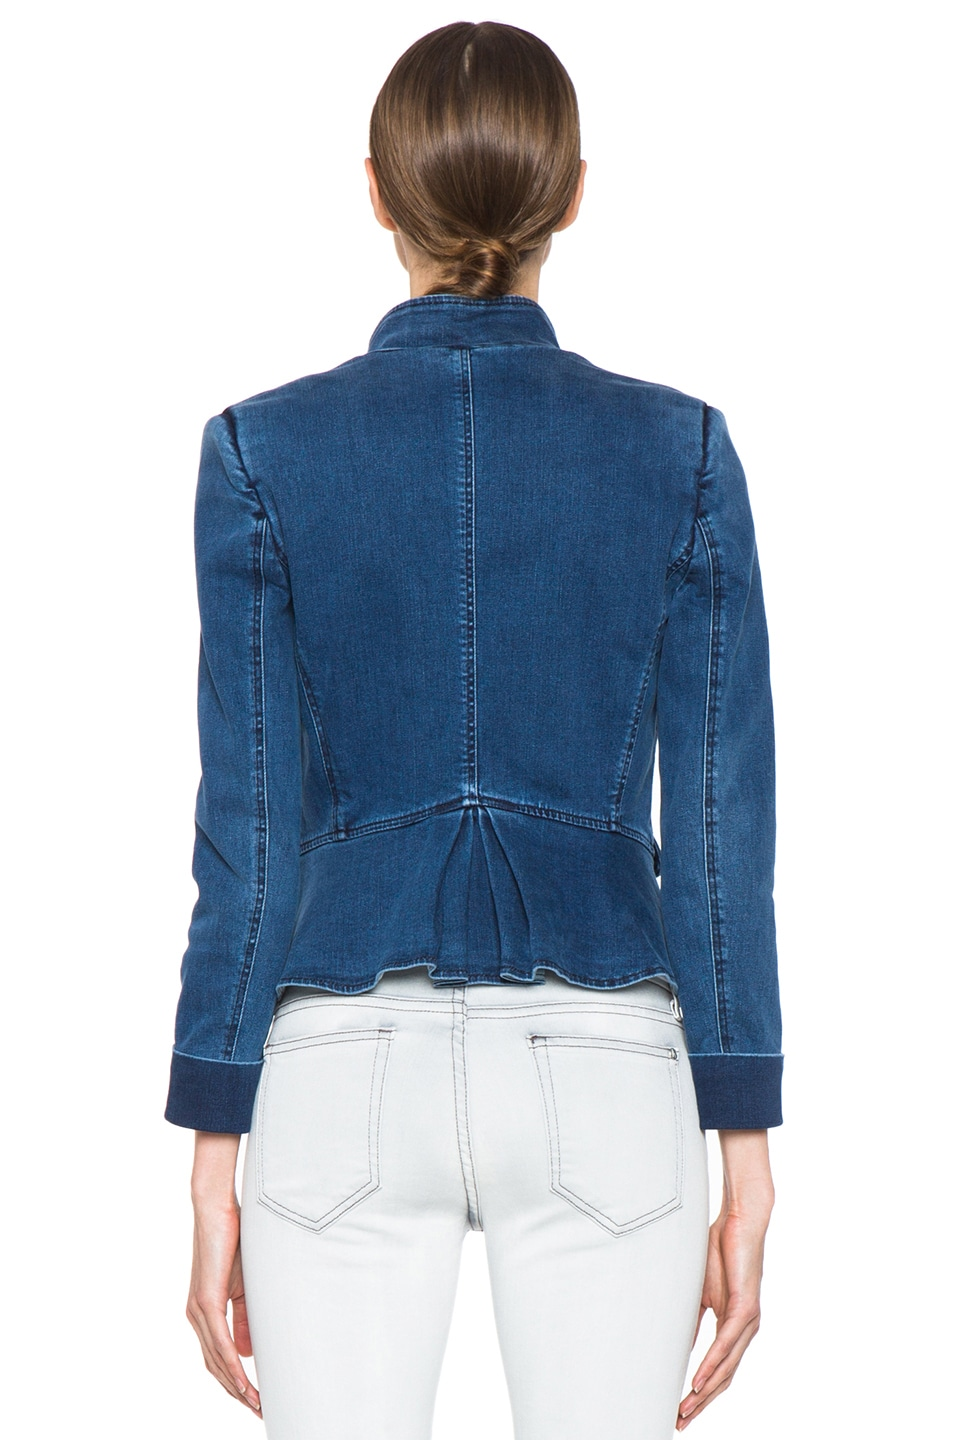 Image 5 of Boy. by Band of Outsiders Stand Collar Peplum Denim Jacket in Washed Blue